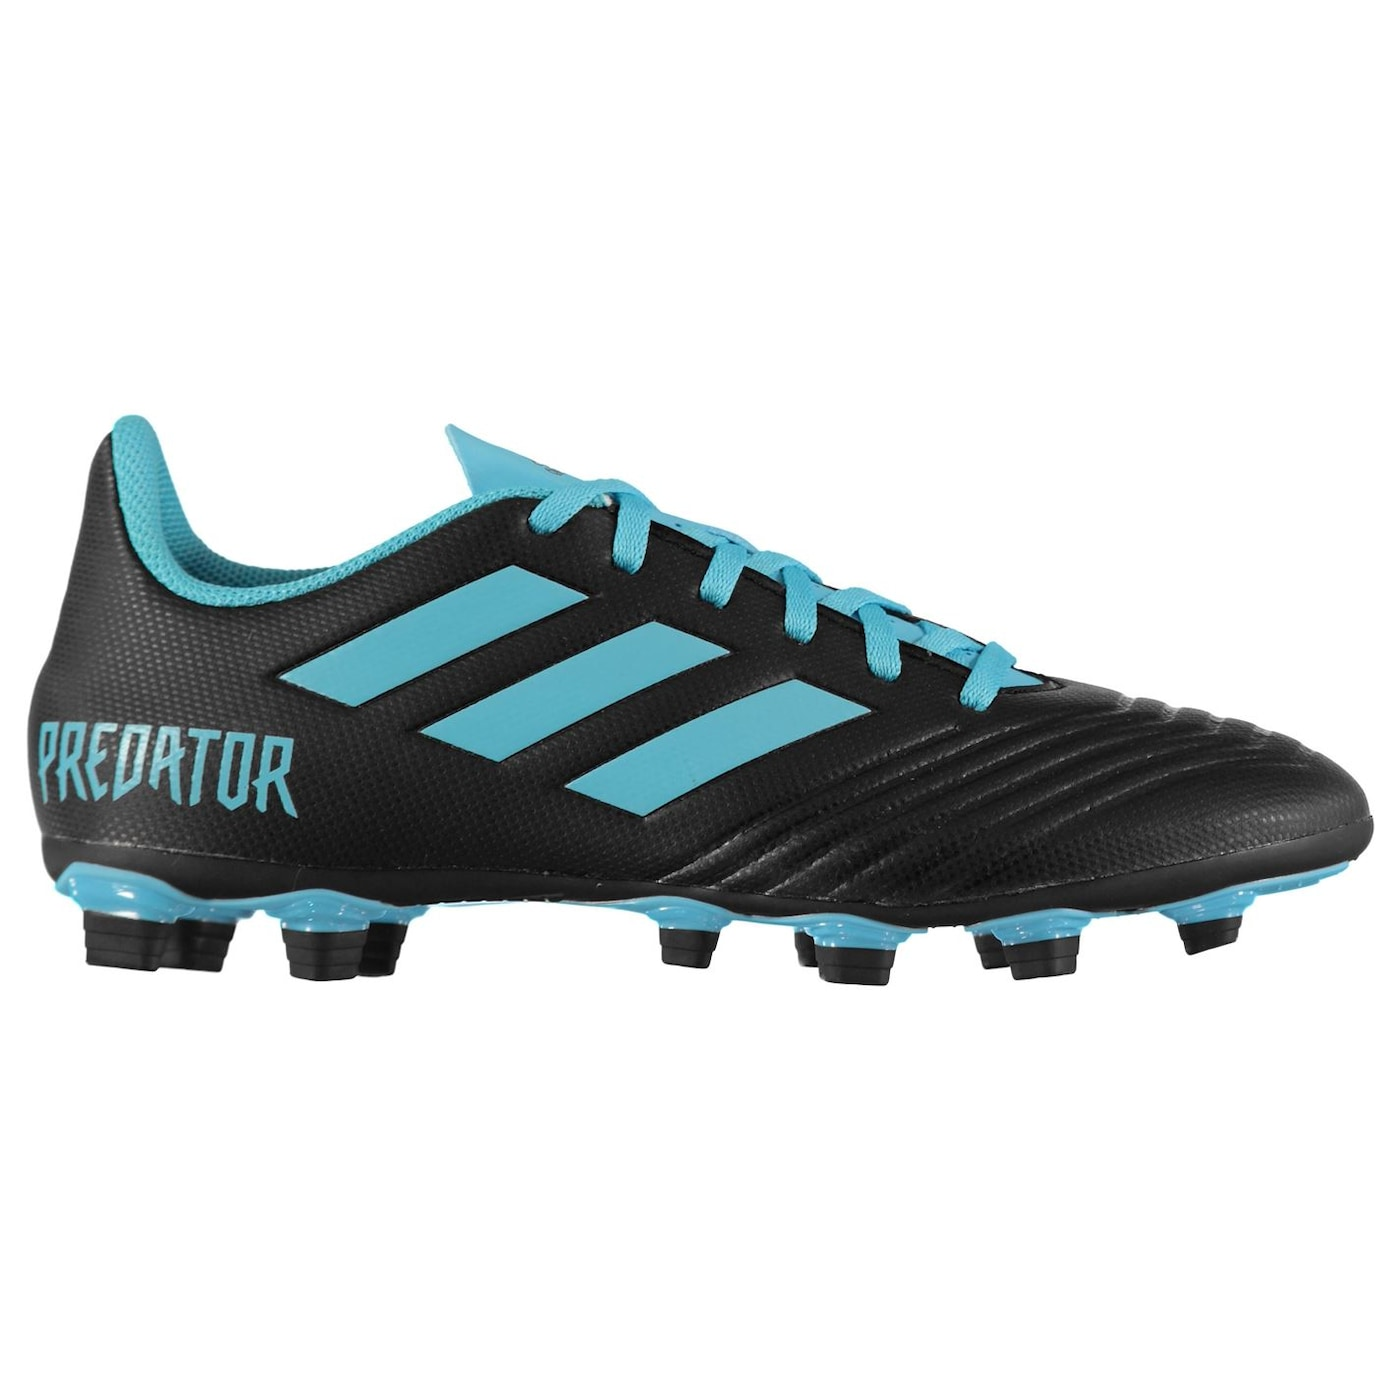 Adidas Predator 19.4 Junior FG Football Boots